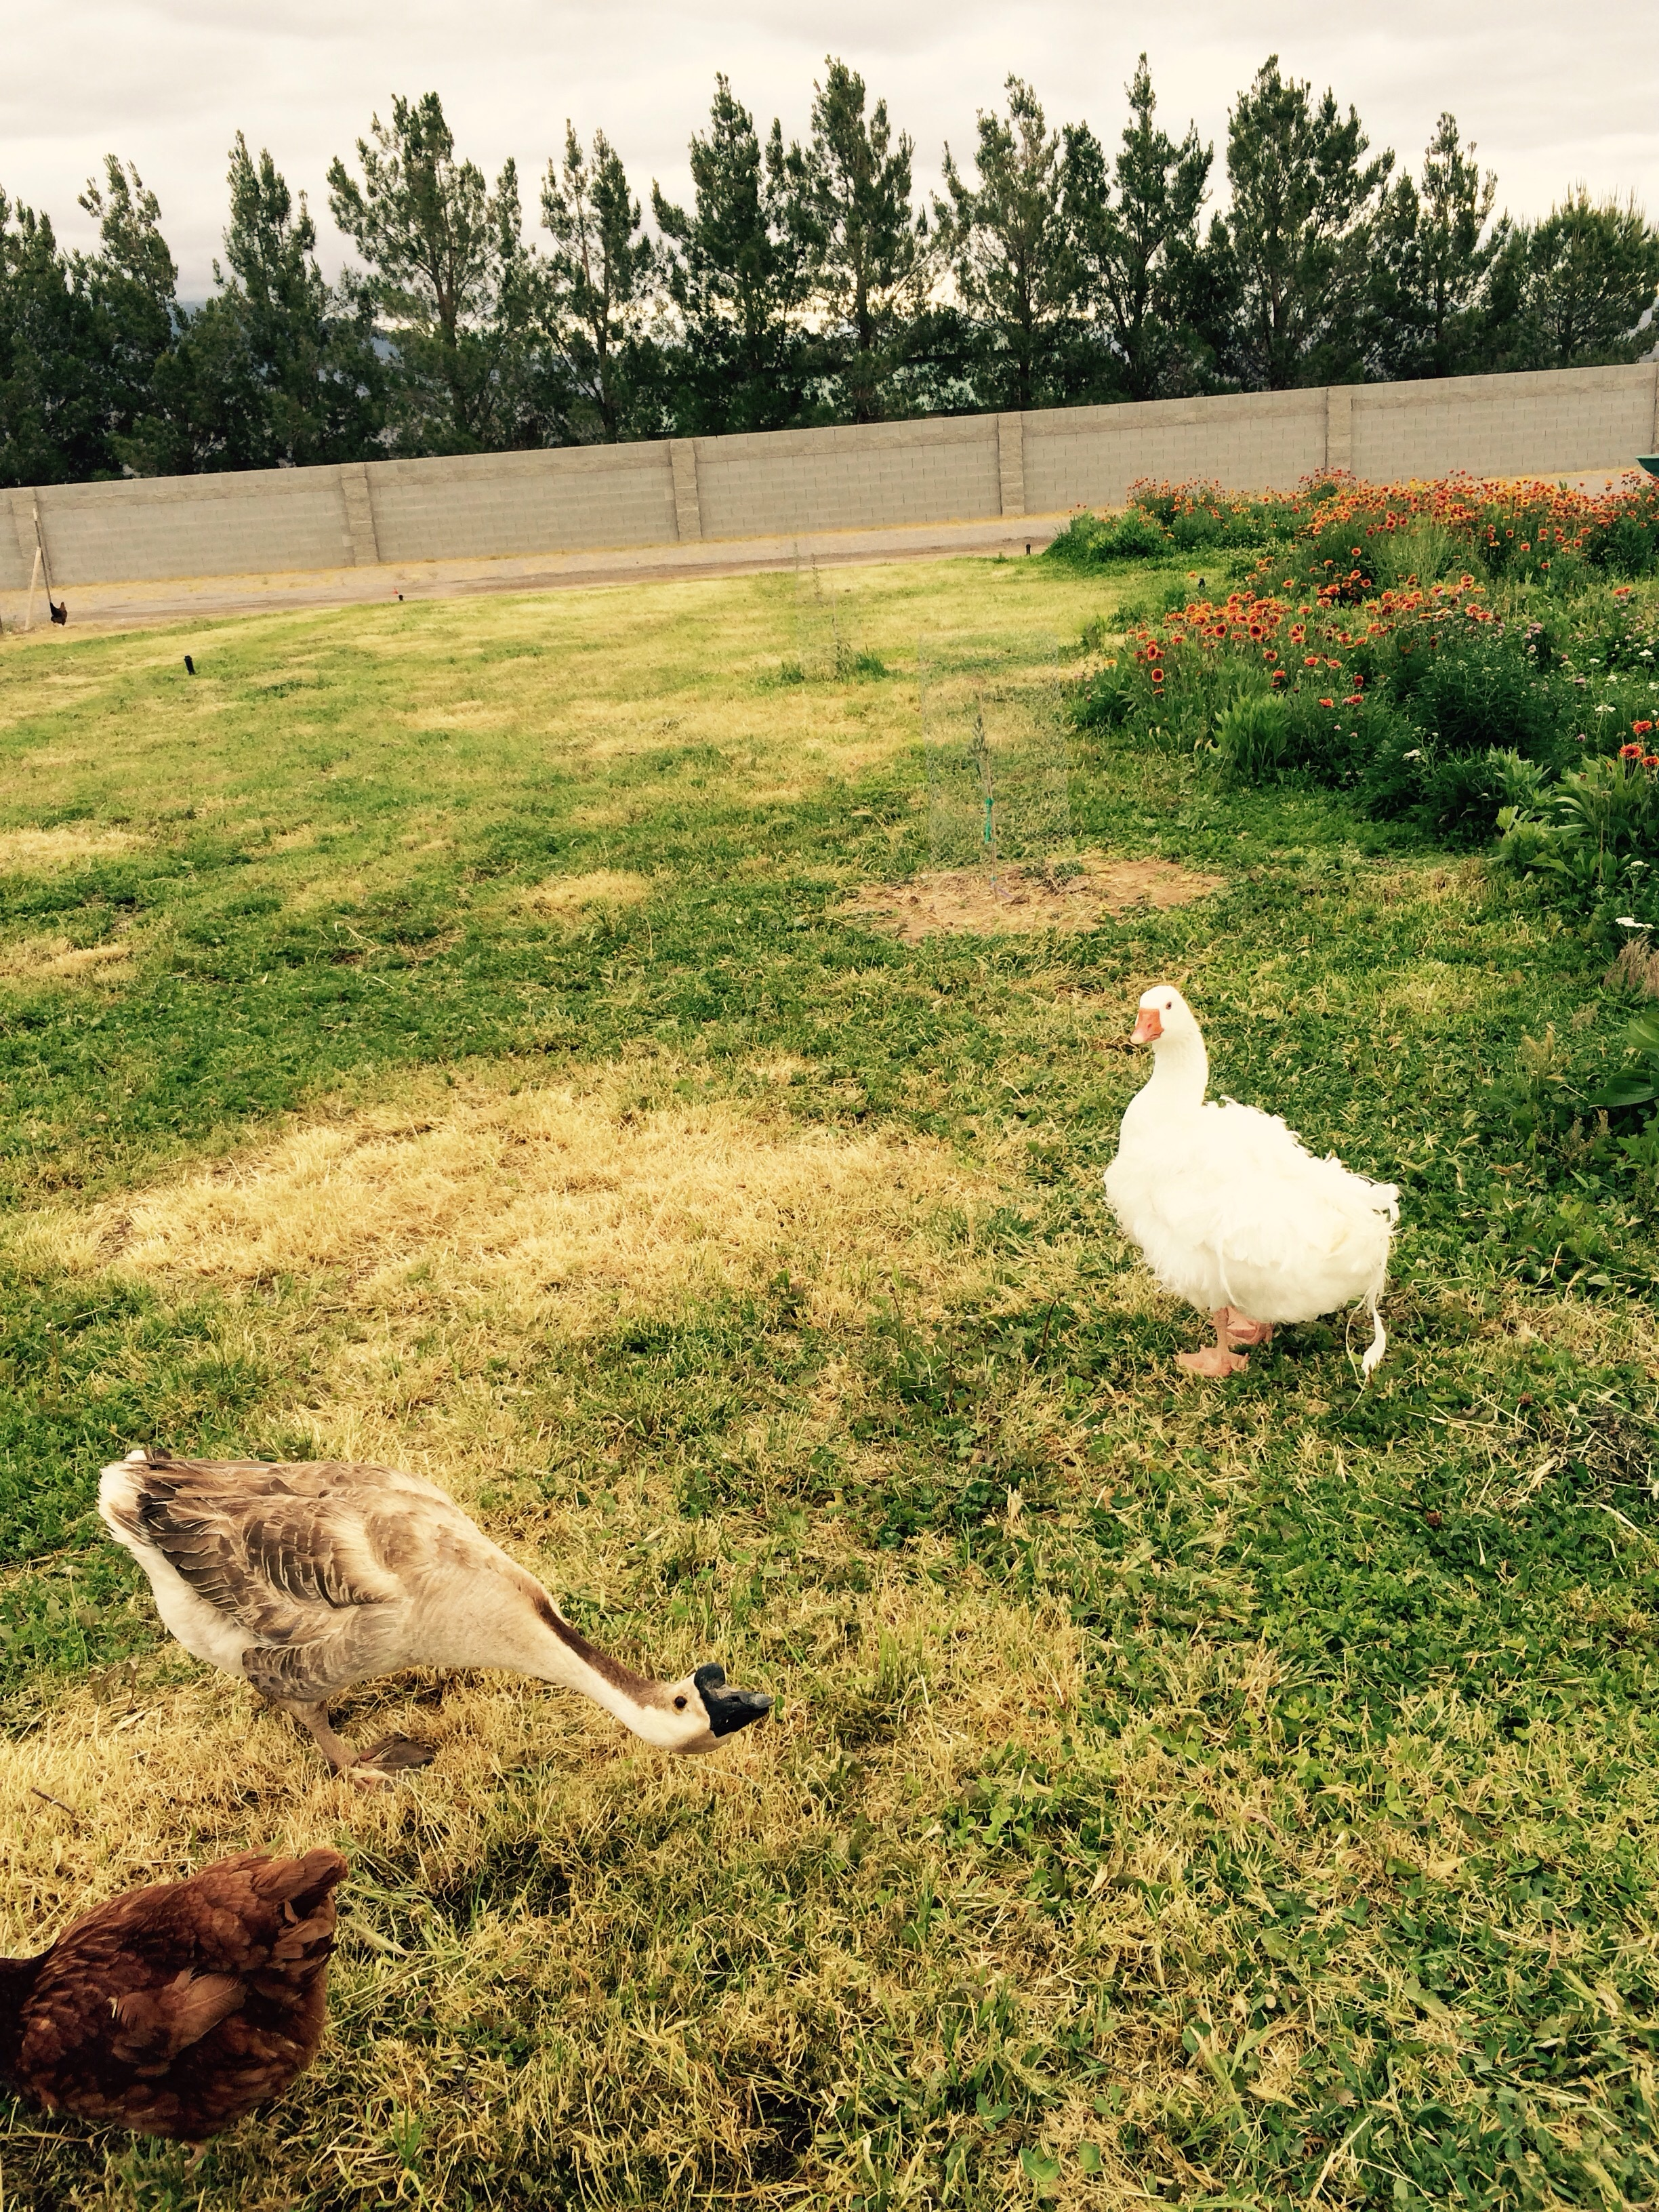 They are enjoying the morning out on the organic chicken grass pasture along with all our some of our farm flowers